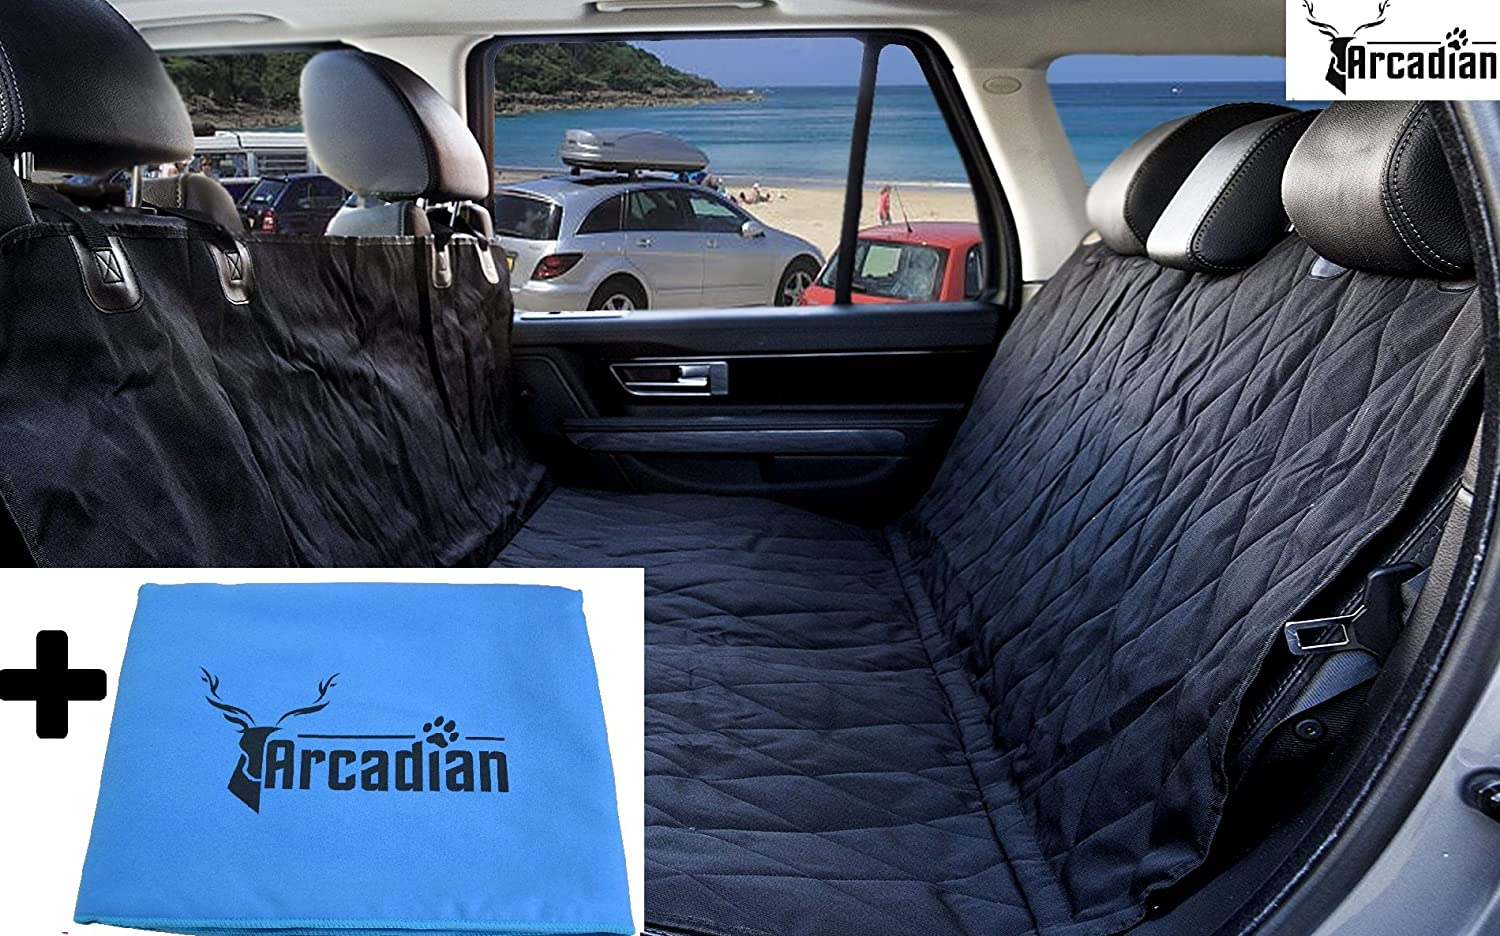 Arcadian Dog Car Seat Cover Waterproof and Scratch Proof Non-Slip Back Seat Cover. Arcadian Supplies